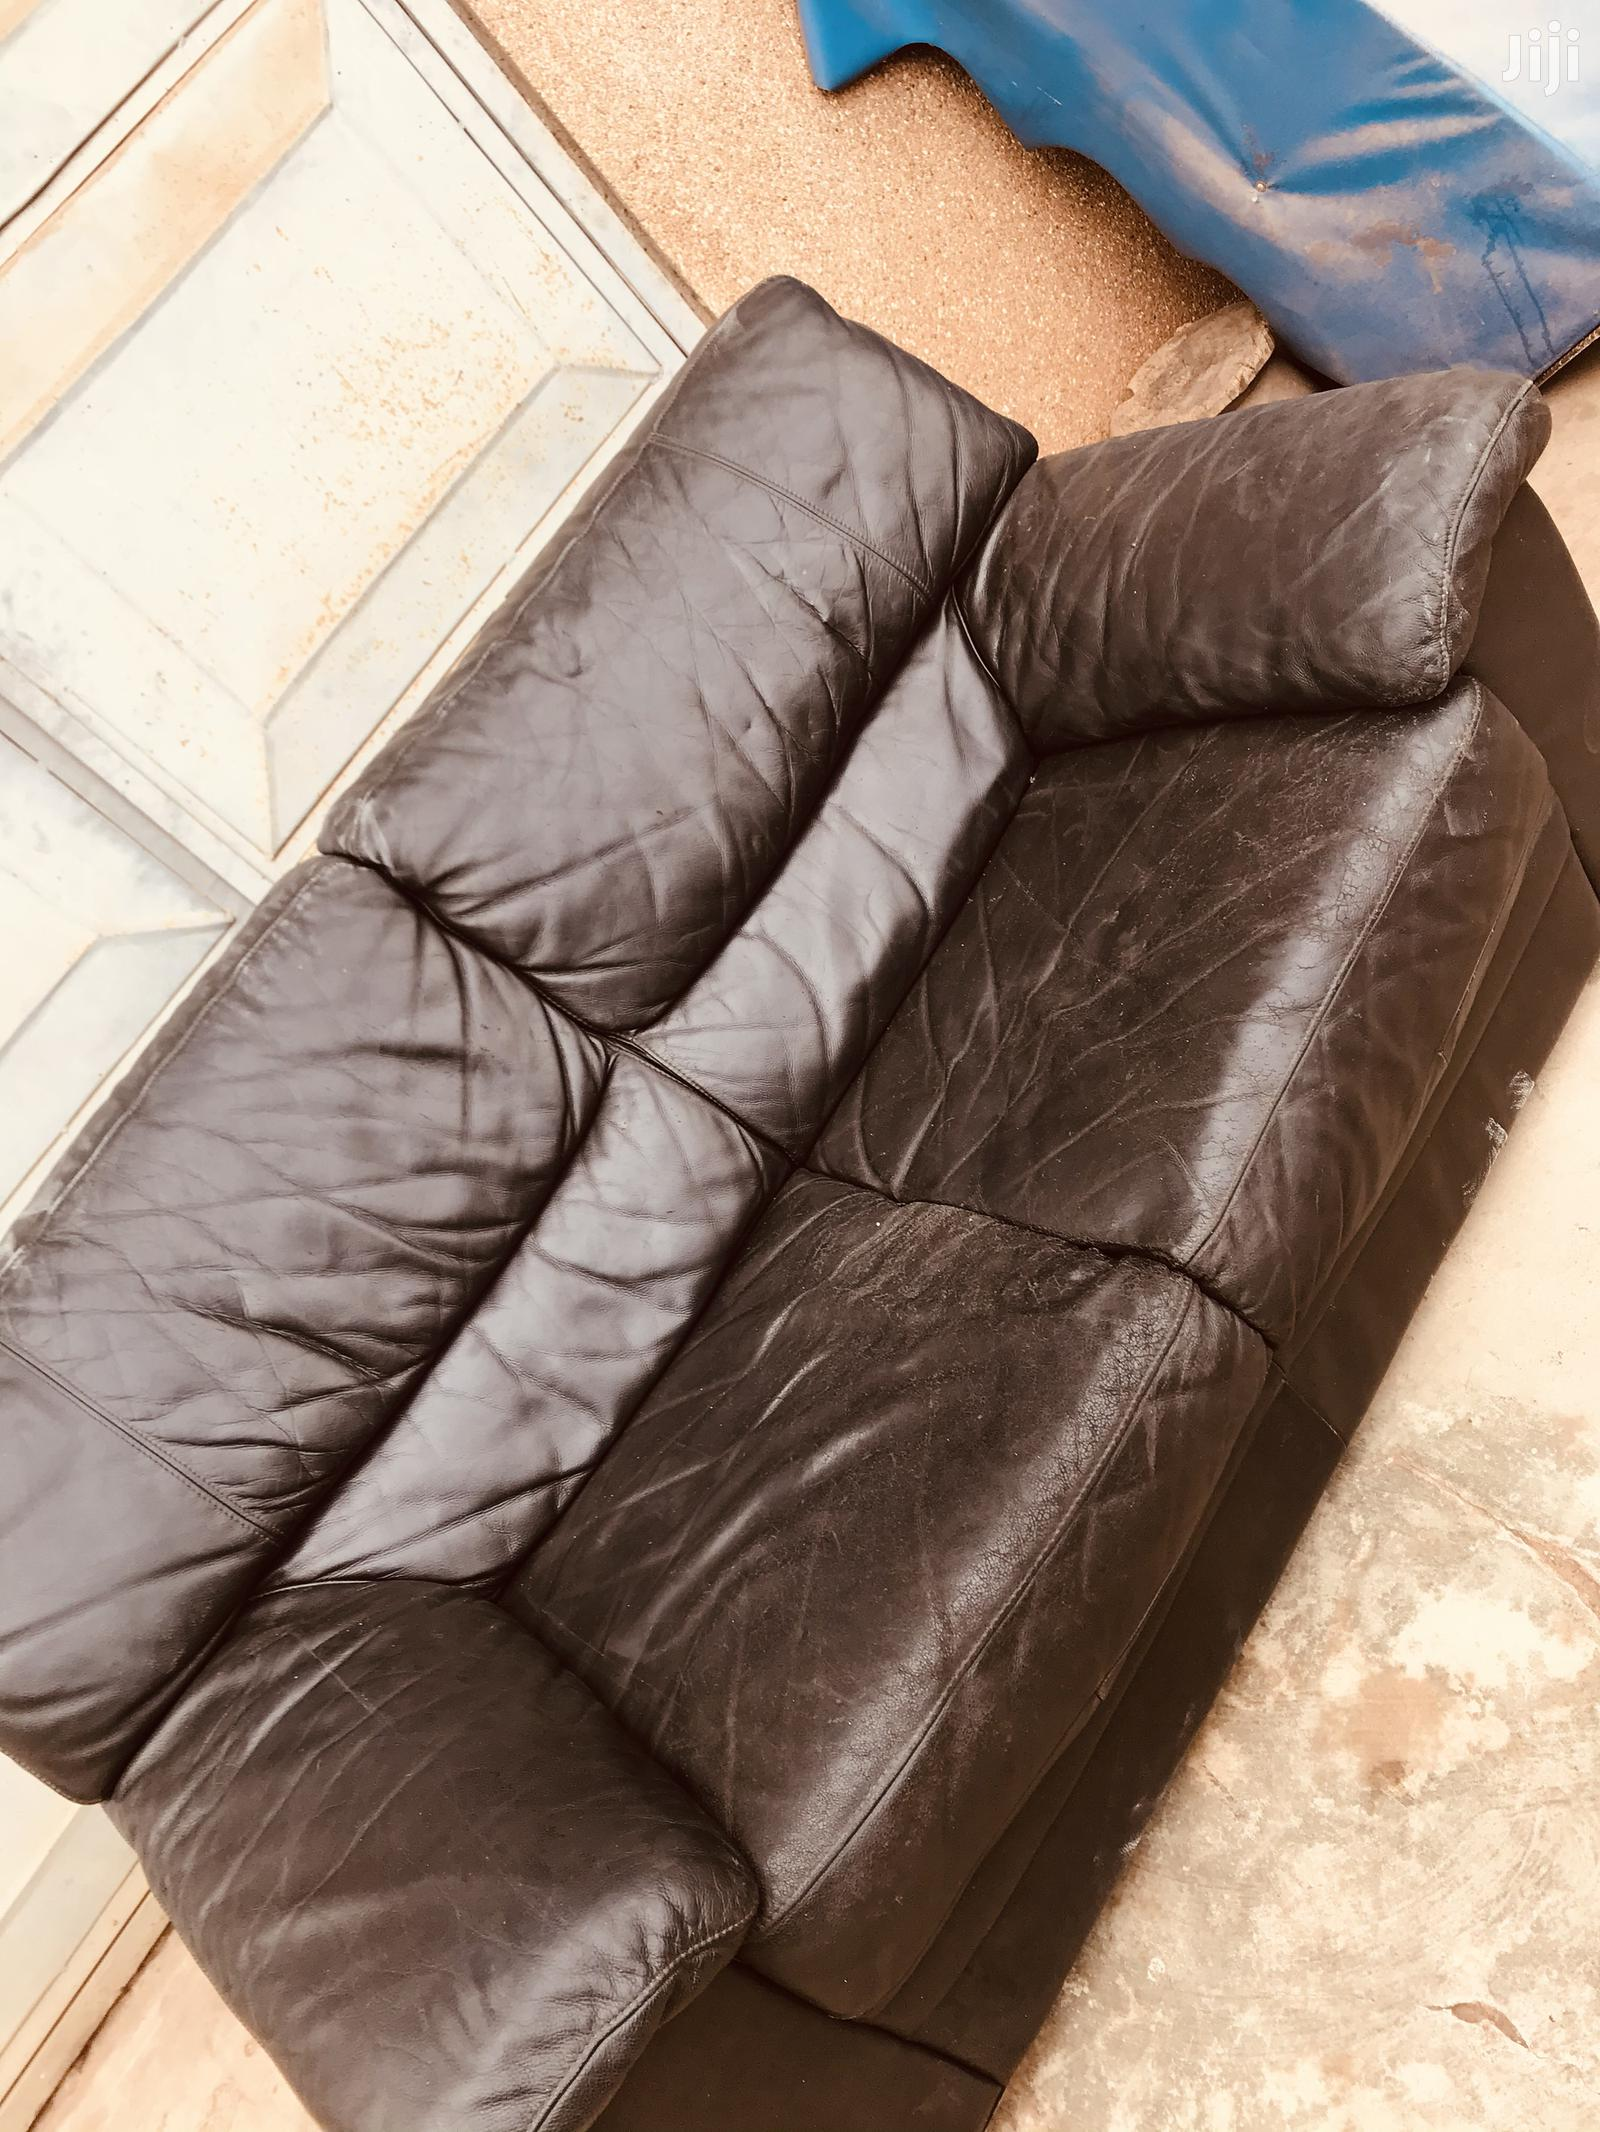 Foreign Sofar | Furniture for sale in Achimota, Greater Accra, Ghana